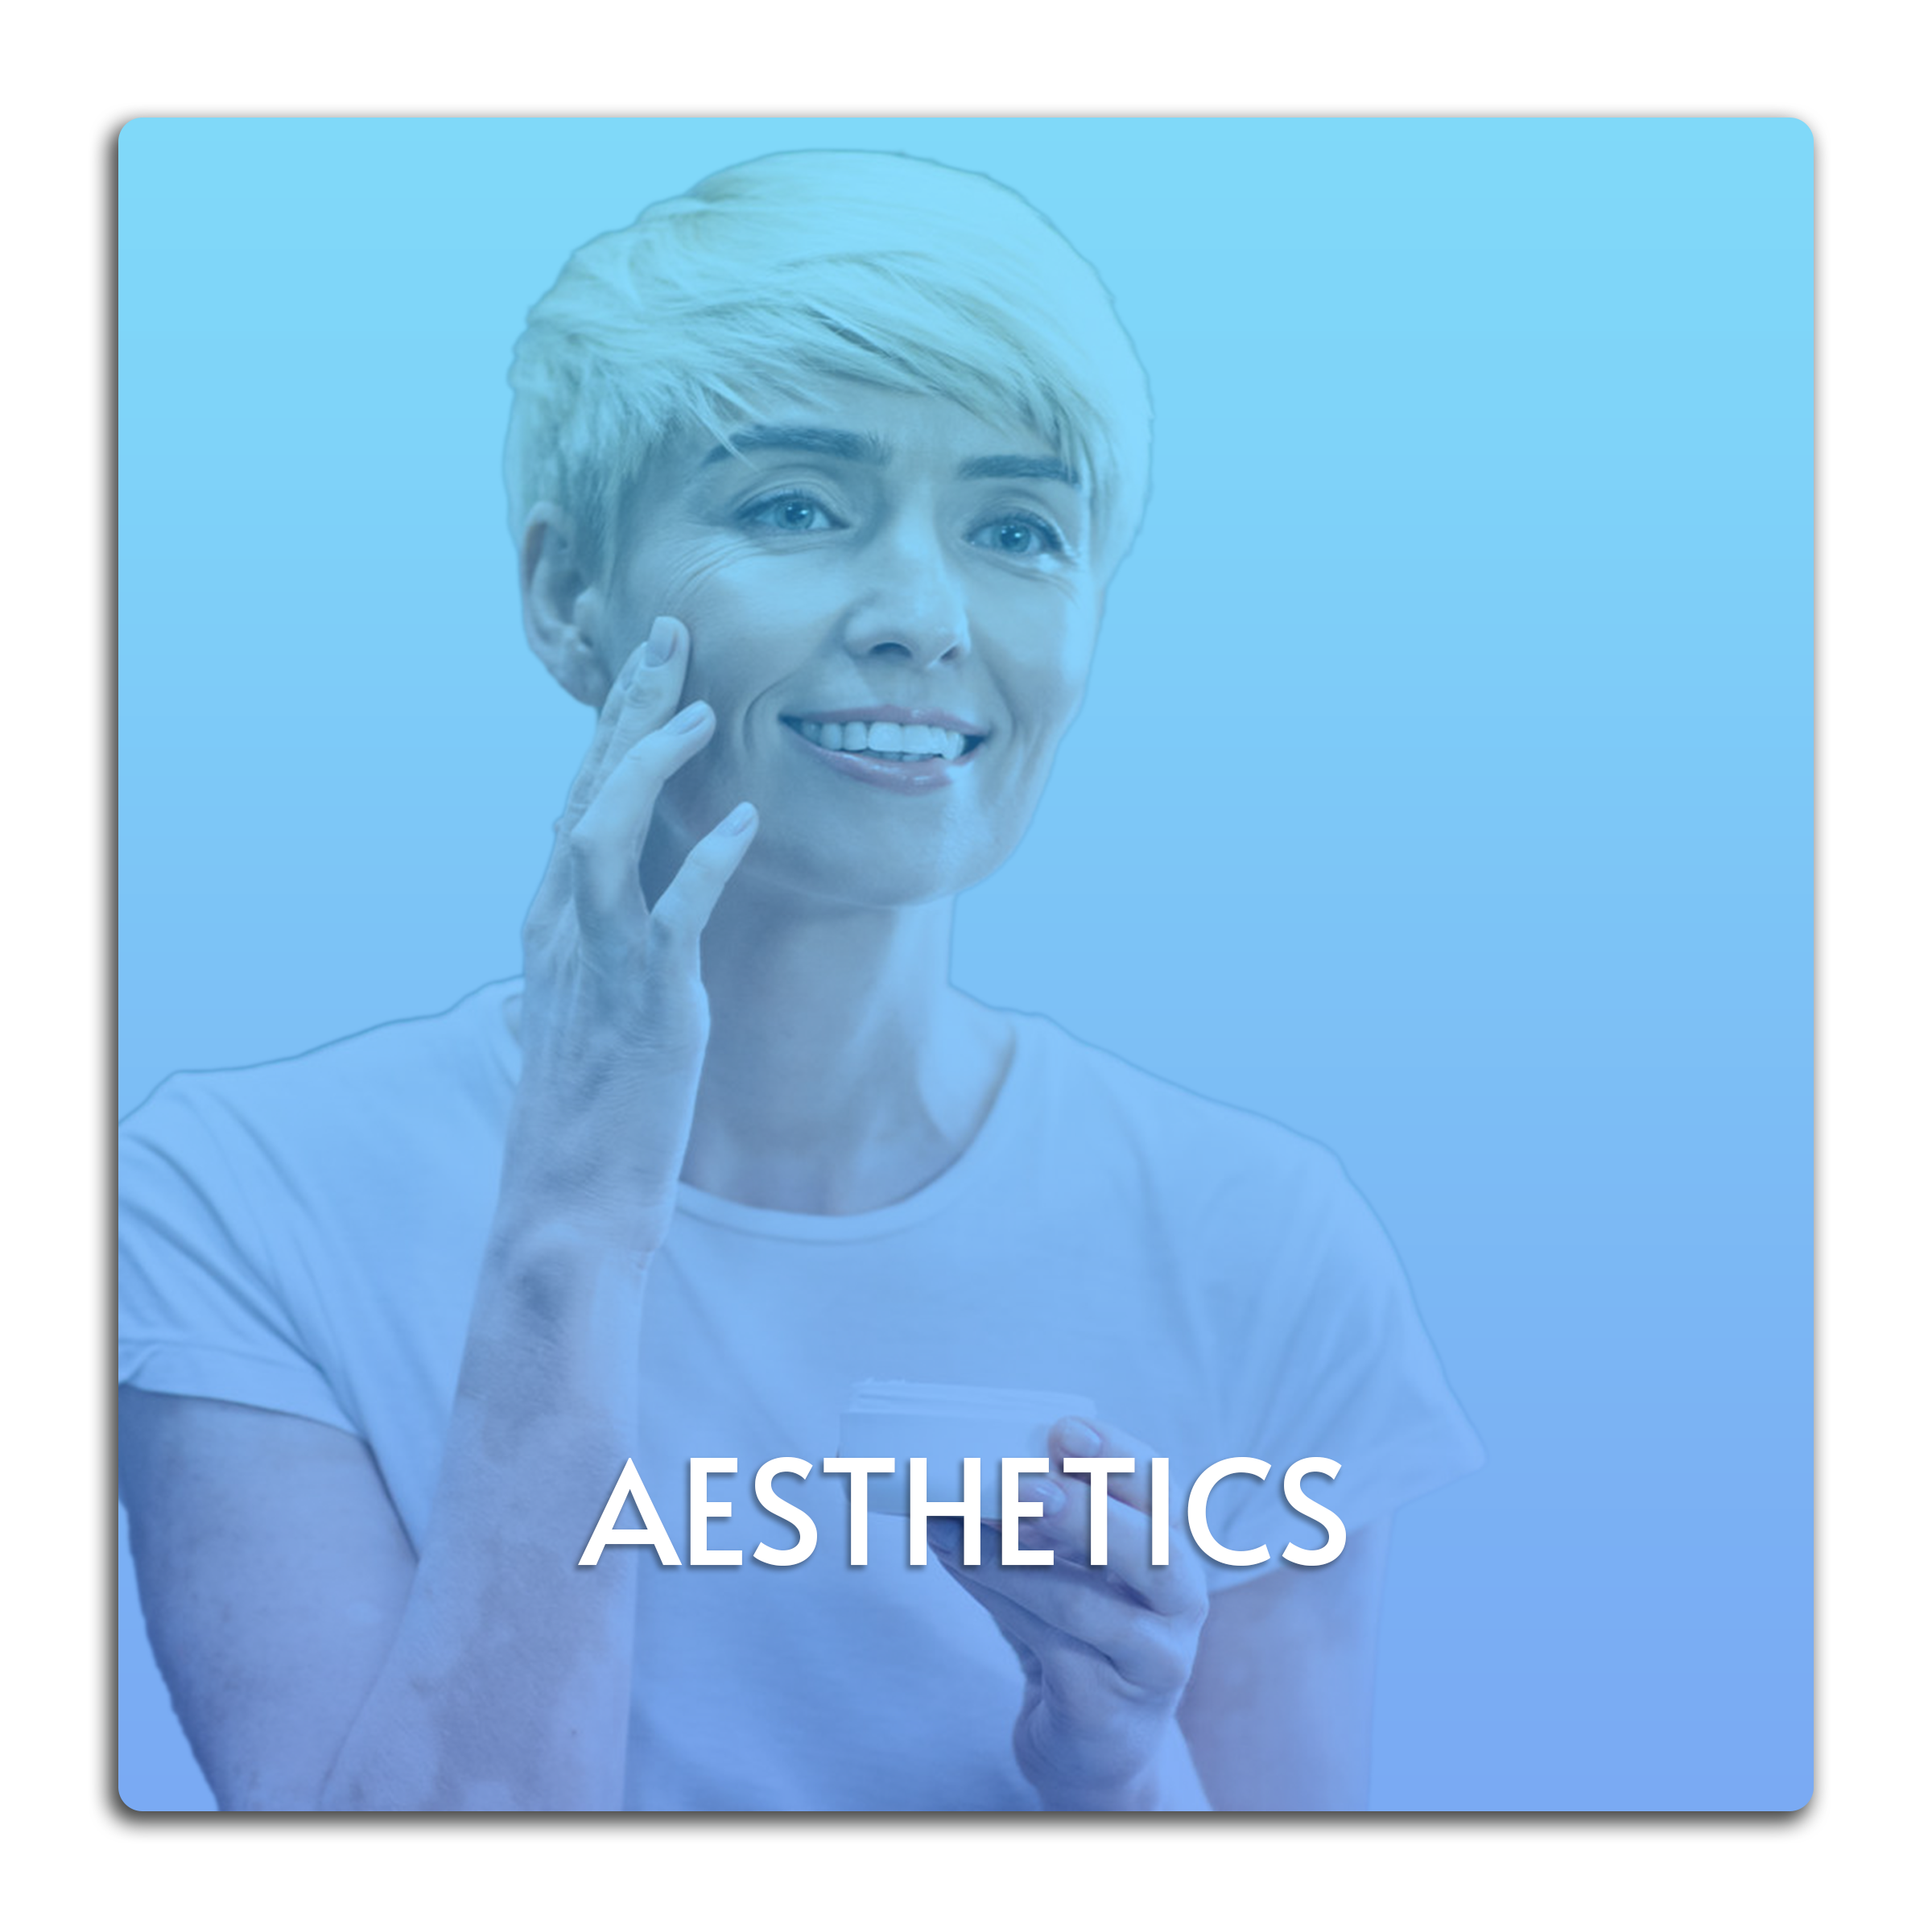 This image is a button linked to the Aesthetics page